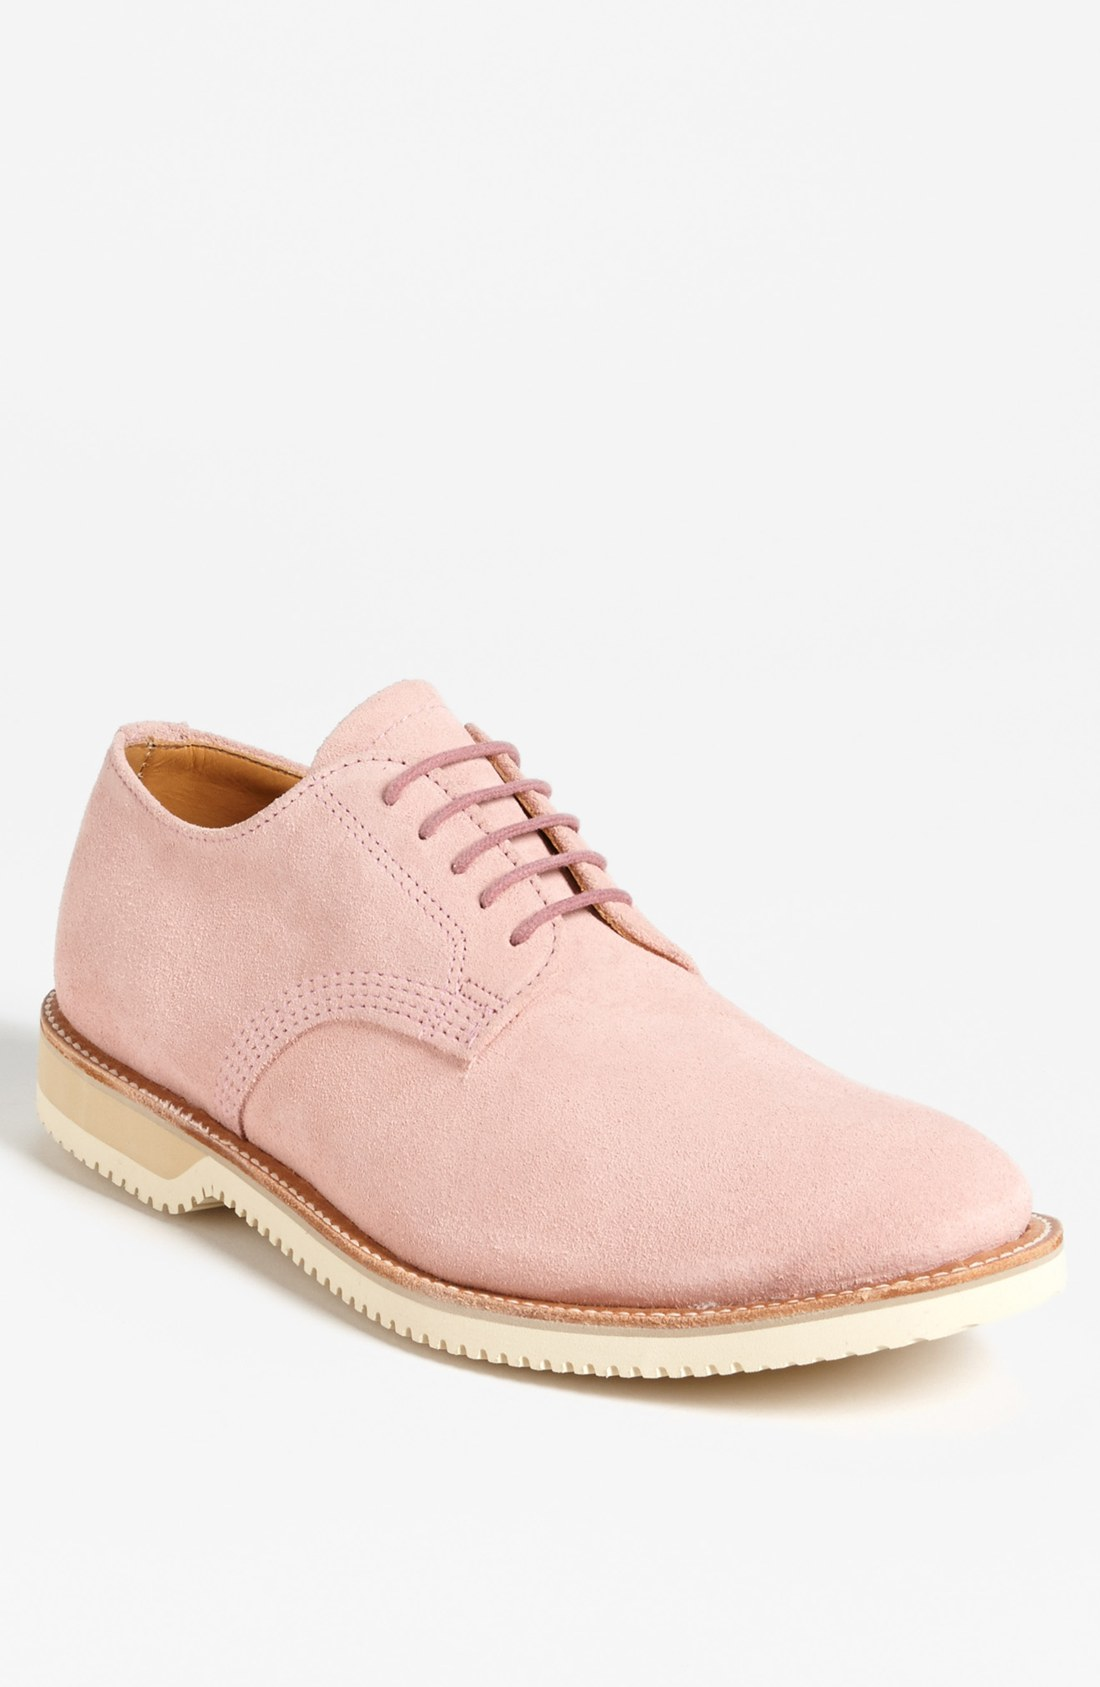 Walk-over Chase Oxford In Pink For Men | Lyst